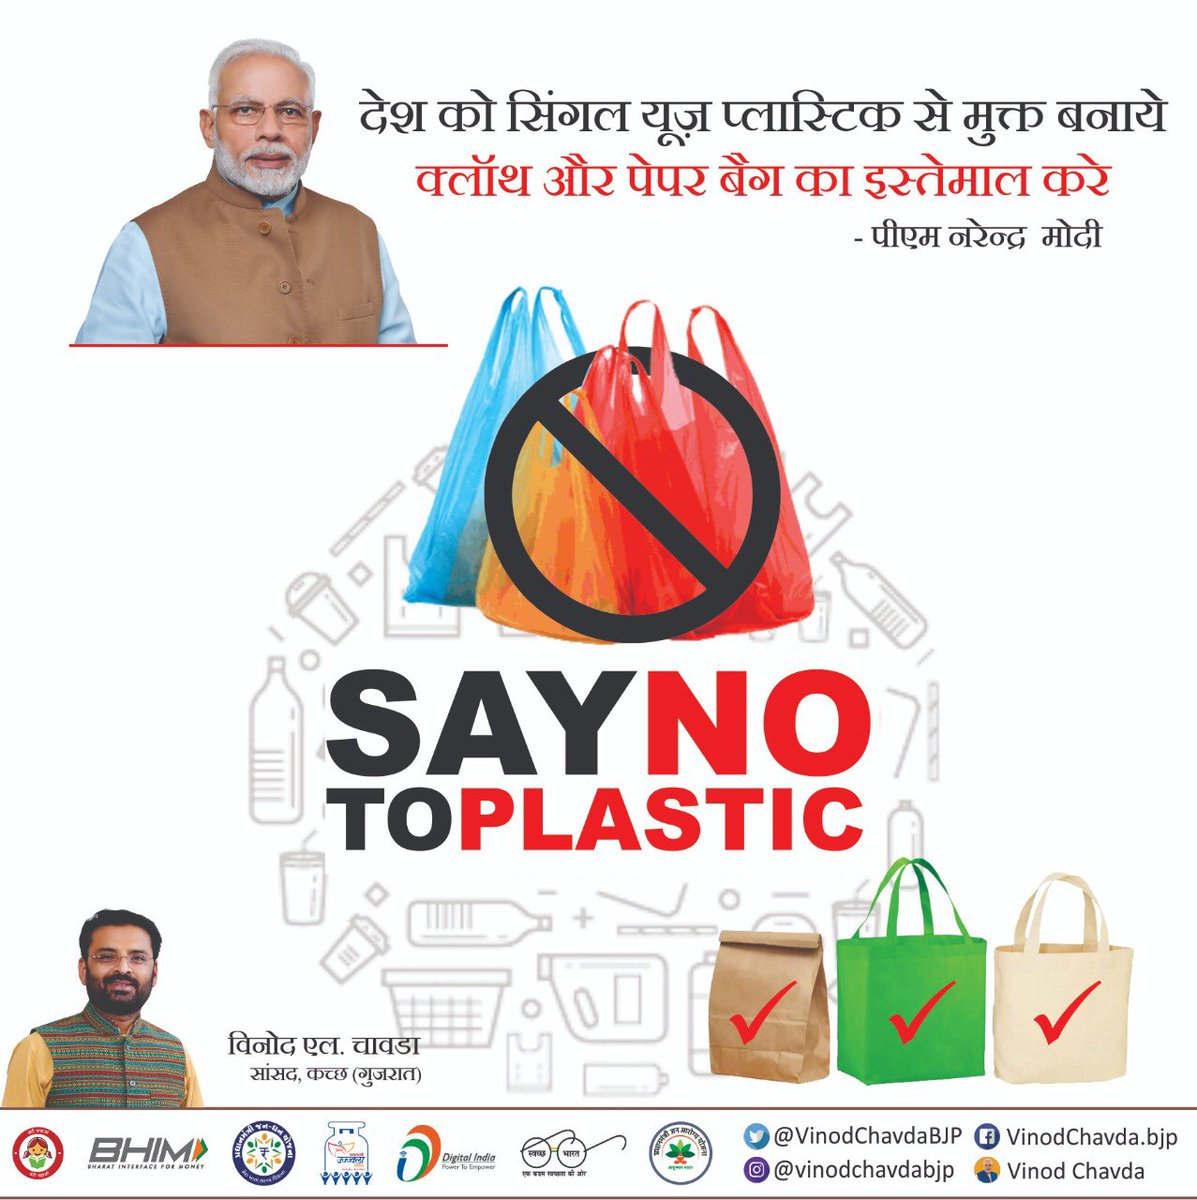 This #IndependenceDay PM Shri @narendramodi ji gave a clarion call against single use plastic. A small change in your daily routine will not only go a long way in protecting the environment but will also support farmers, weavers & textiles workers etc community. #स्वतंत्रतादिवस